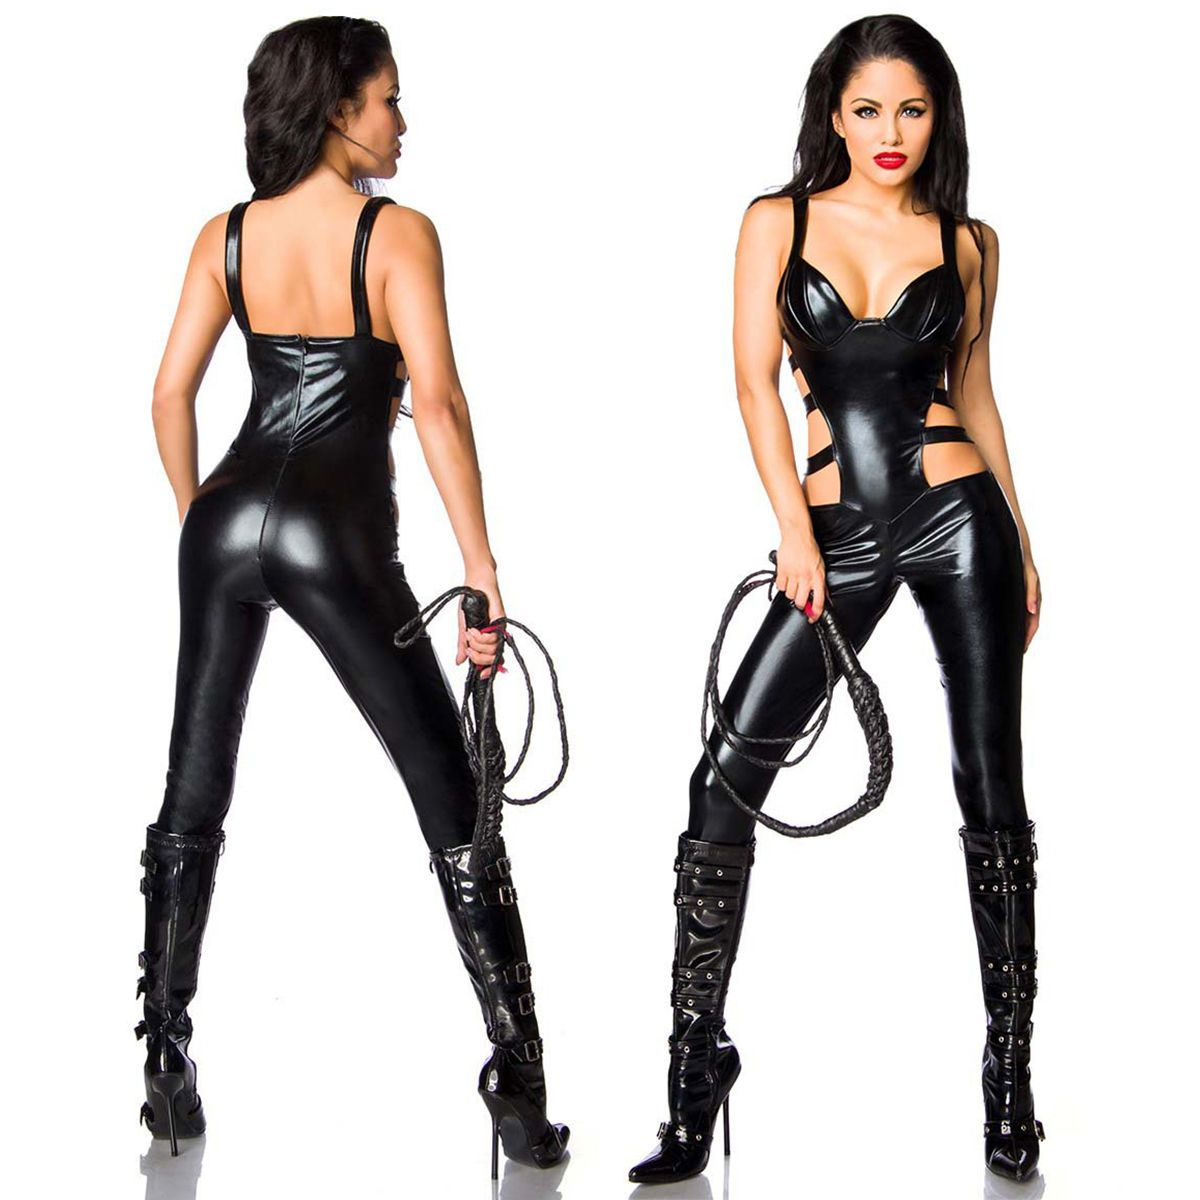 b492eb1c5cf1 Sexy Women Zipper Pvc Leather Catsuit Bodysuit Jumpsuit Costume Gothic  Clubwear